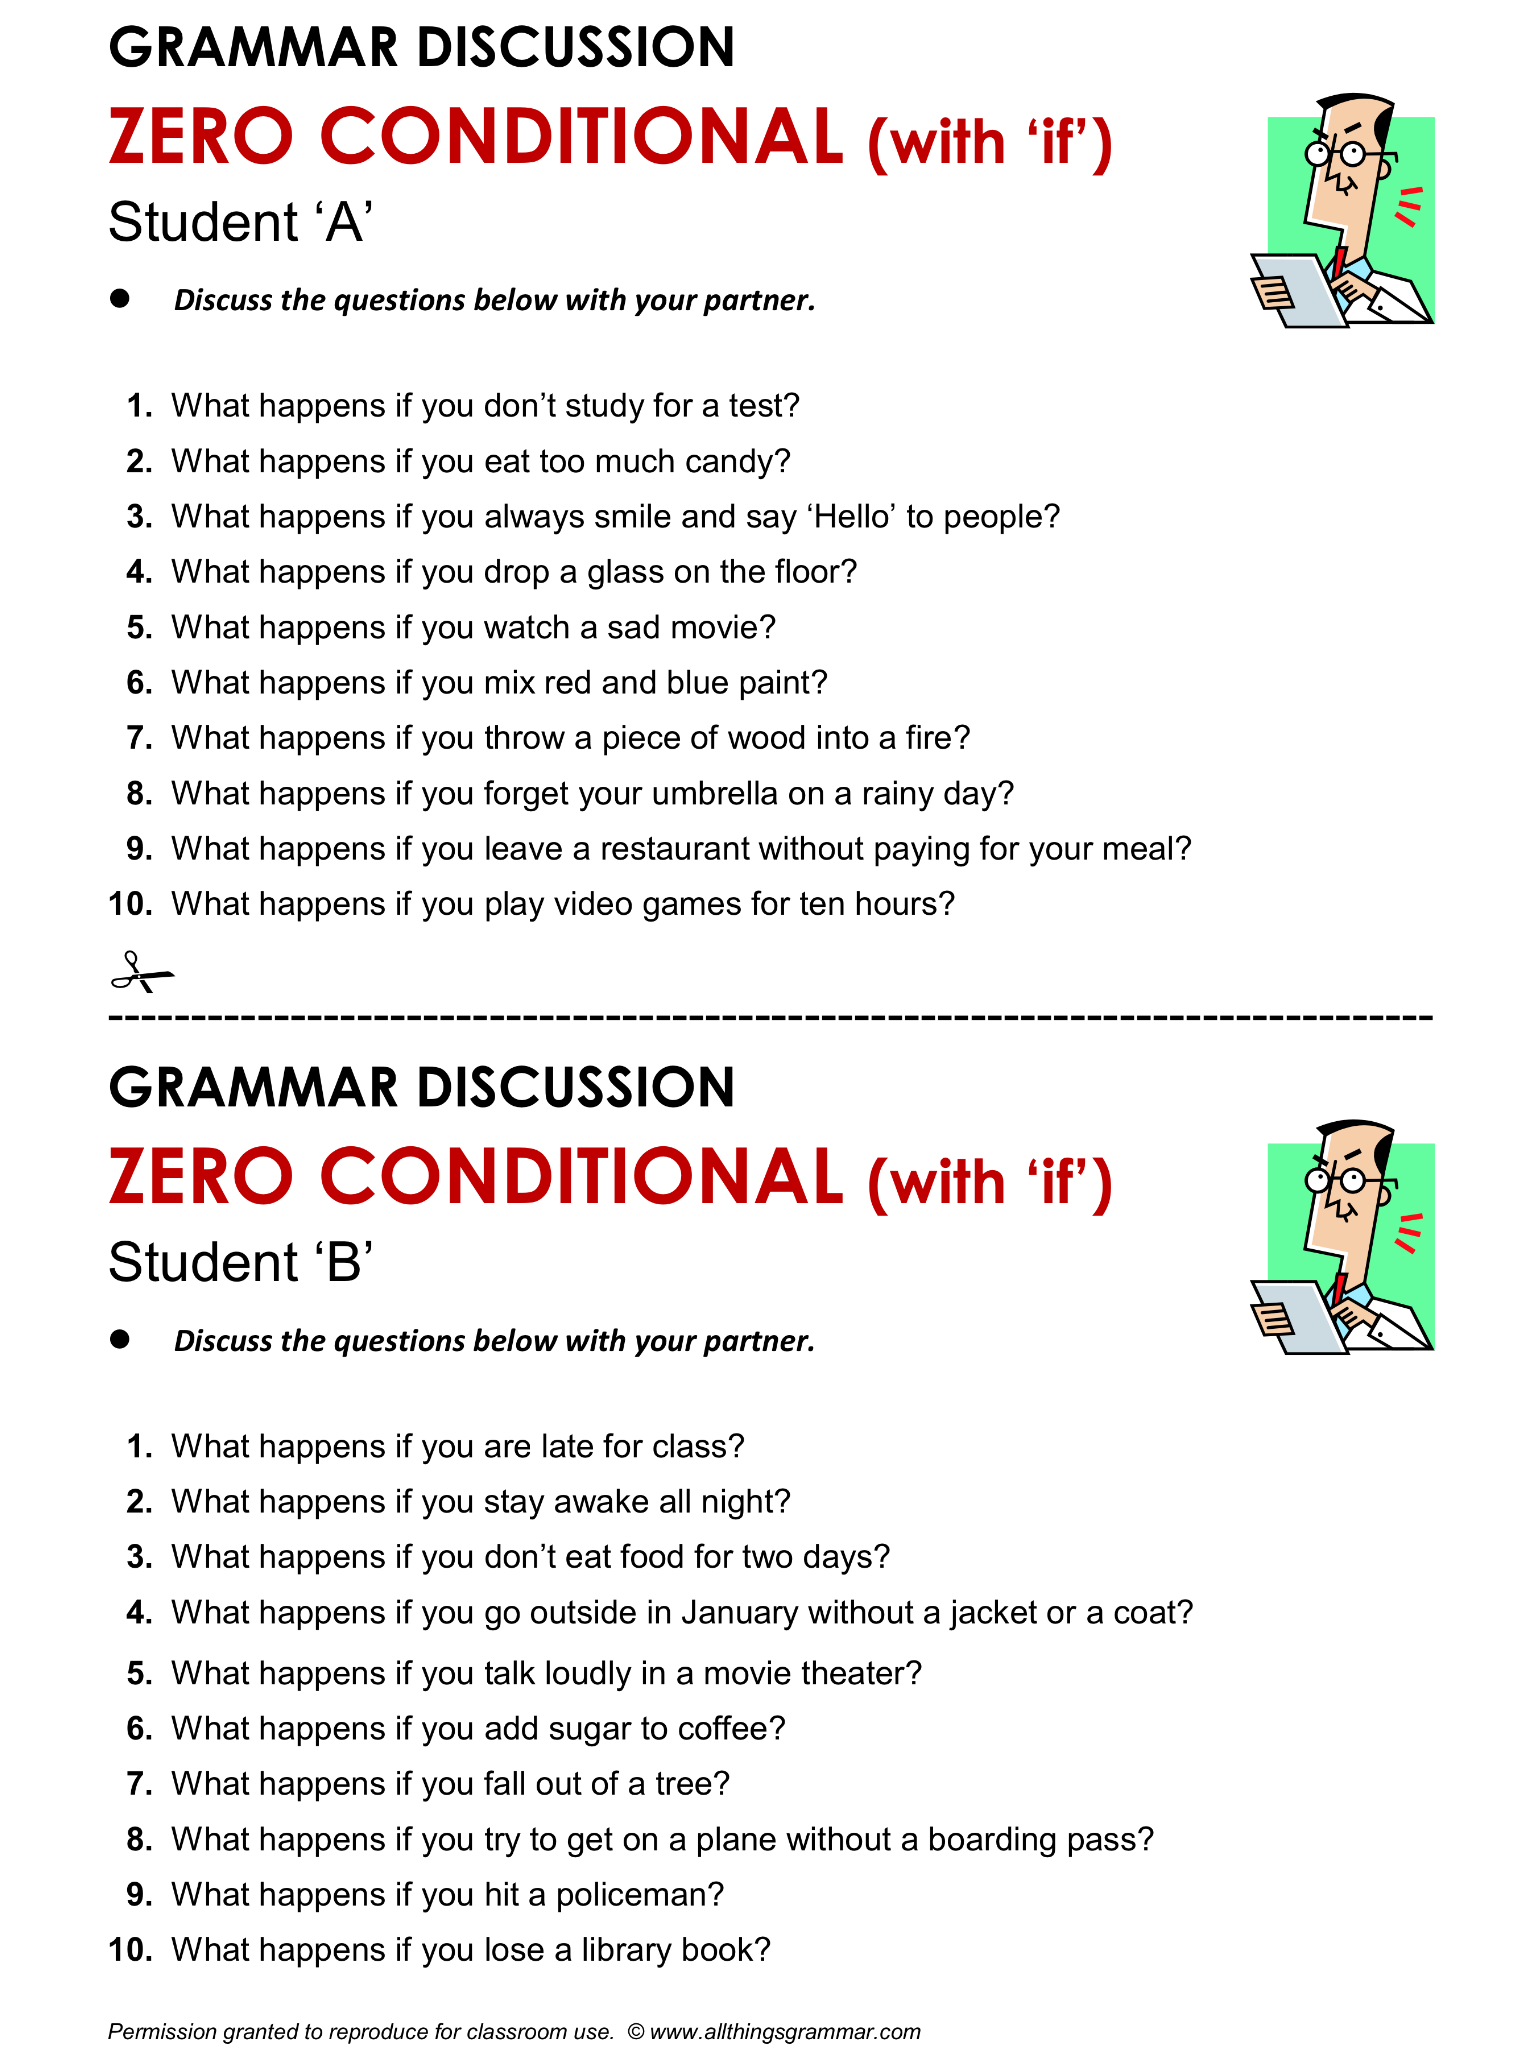 English Grammar Discussion Zero Conditional With If